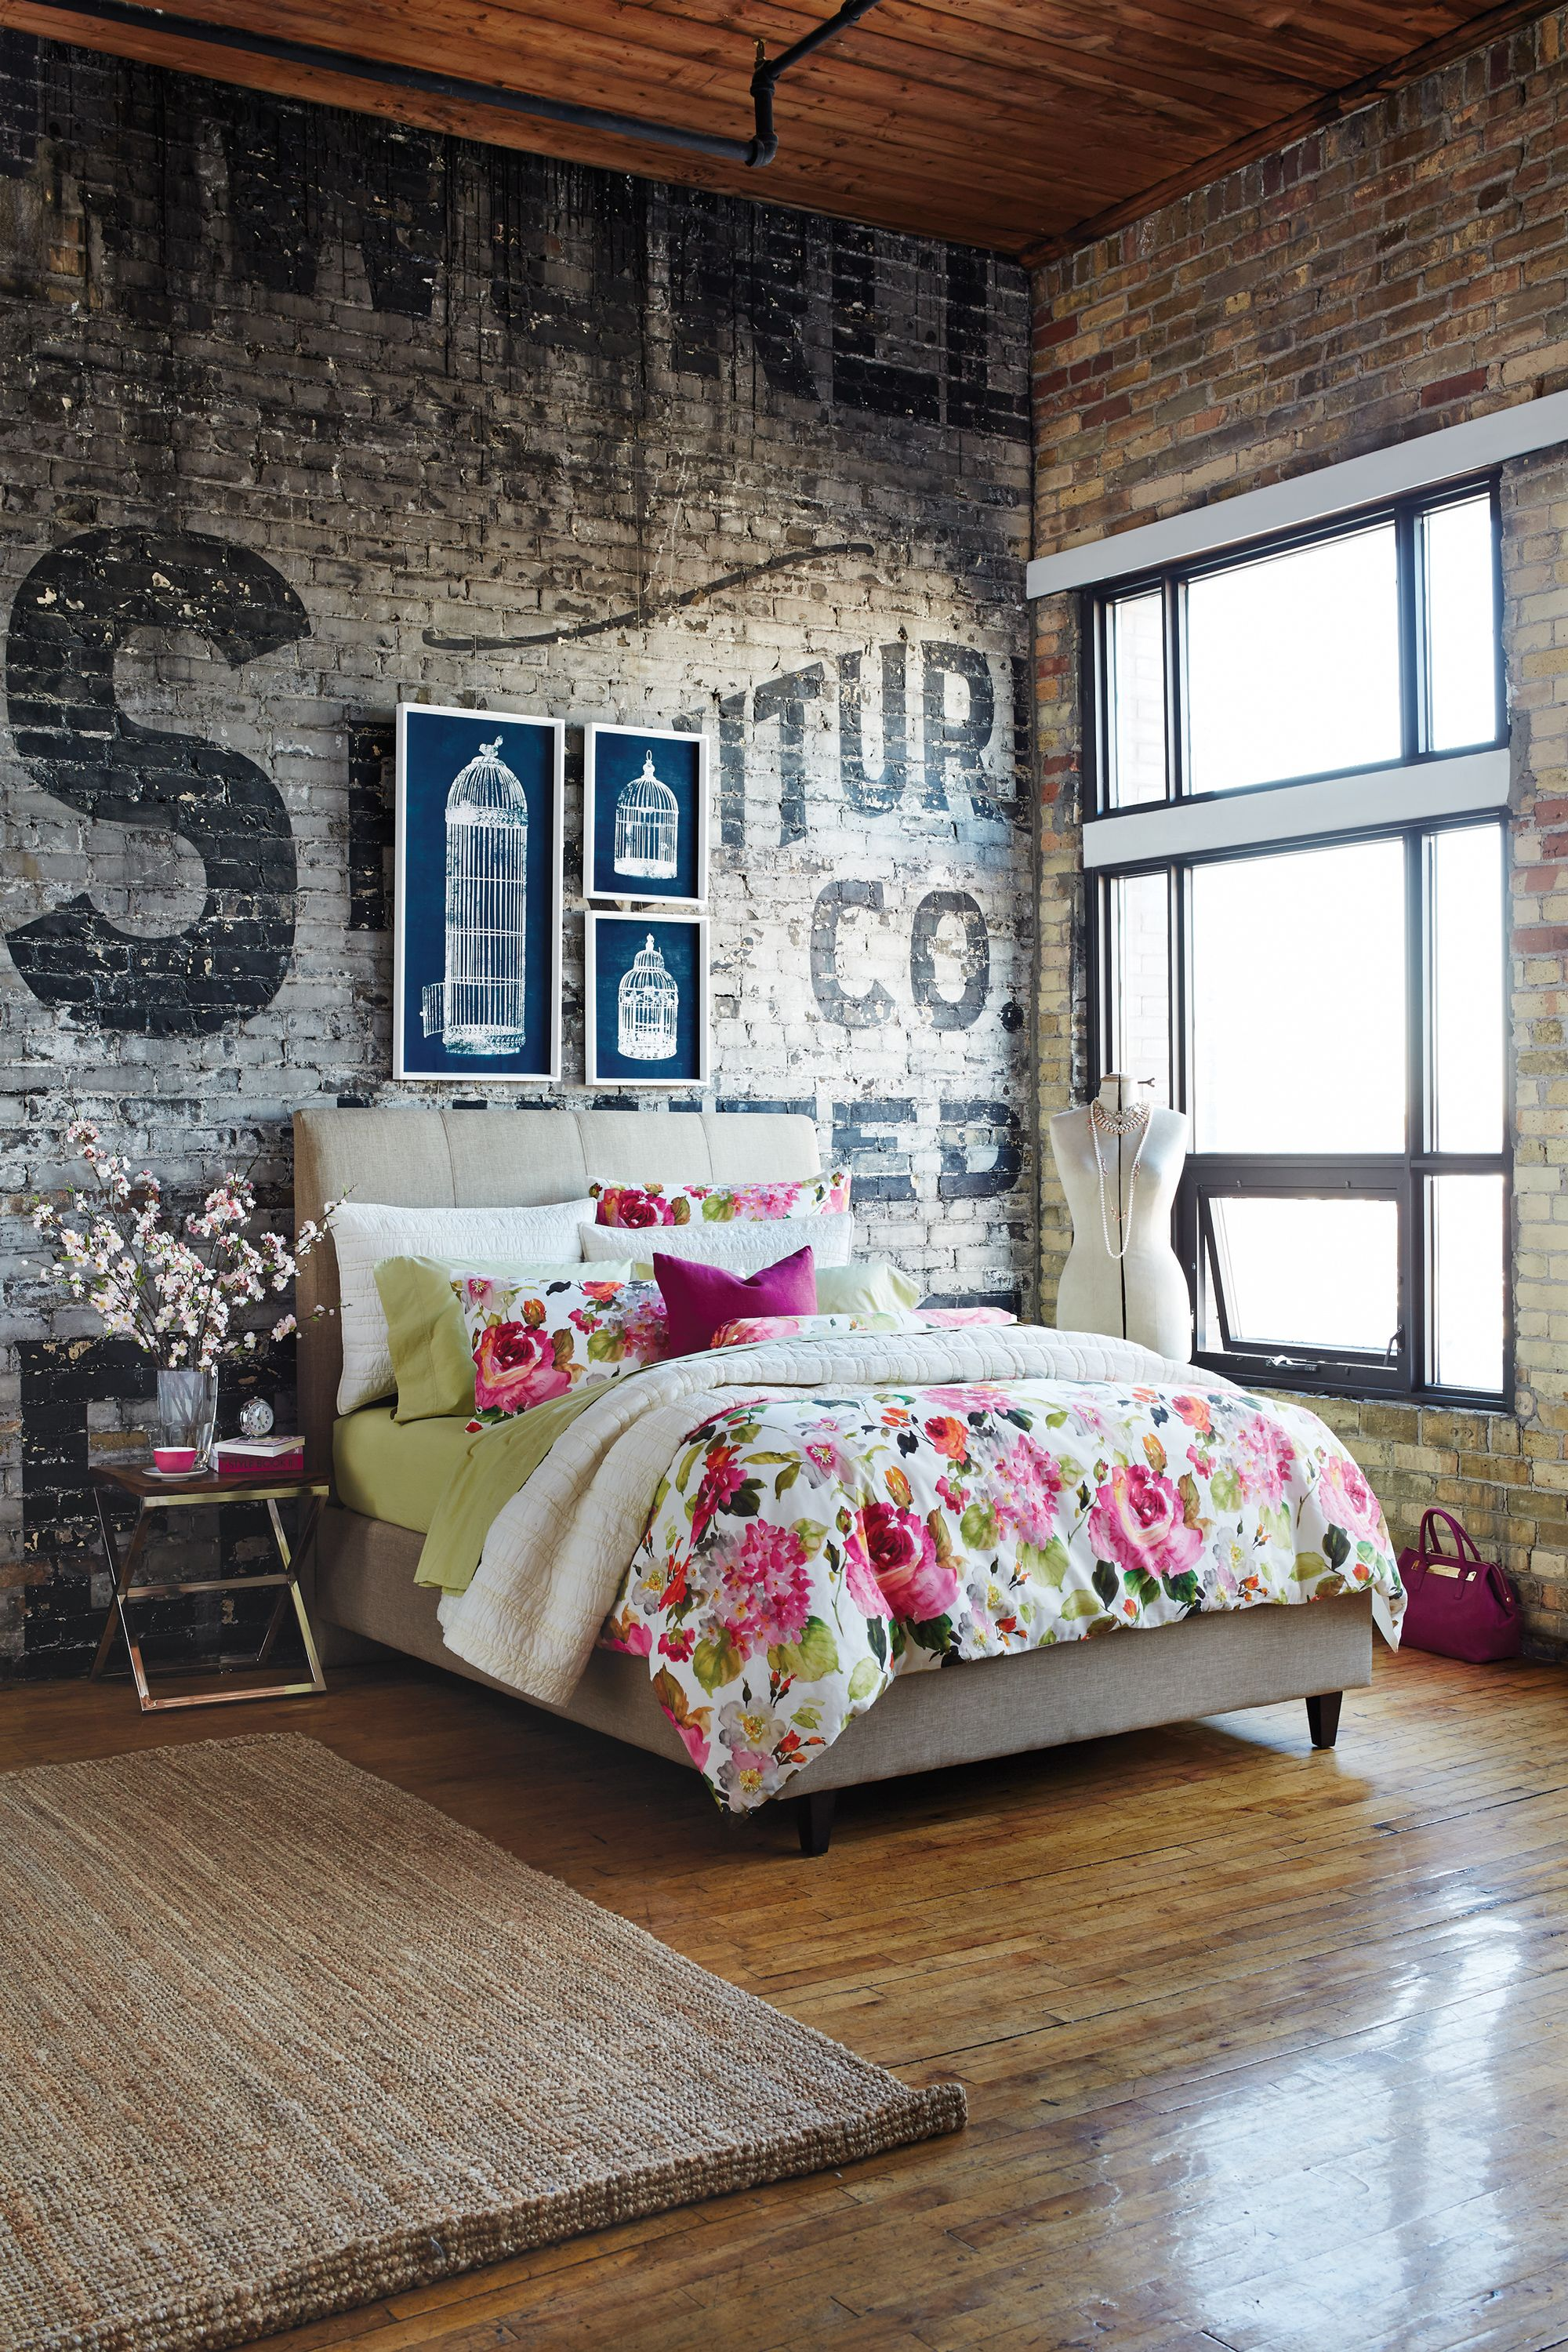 Brick Meubles Divan Lit Exposed Brick Loft Bedroom Floral Bedding Lettering Frames